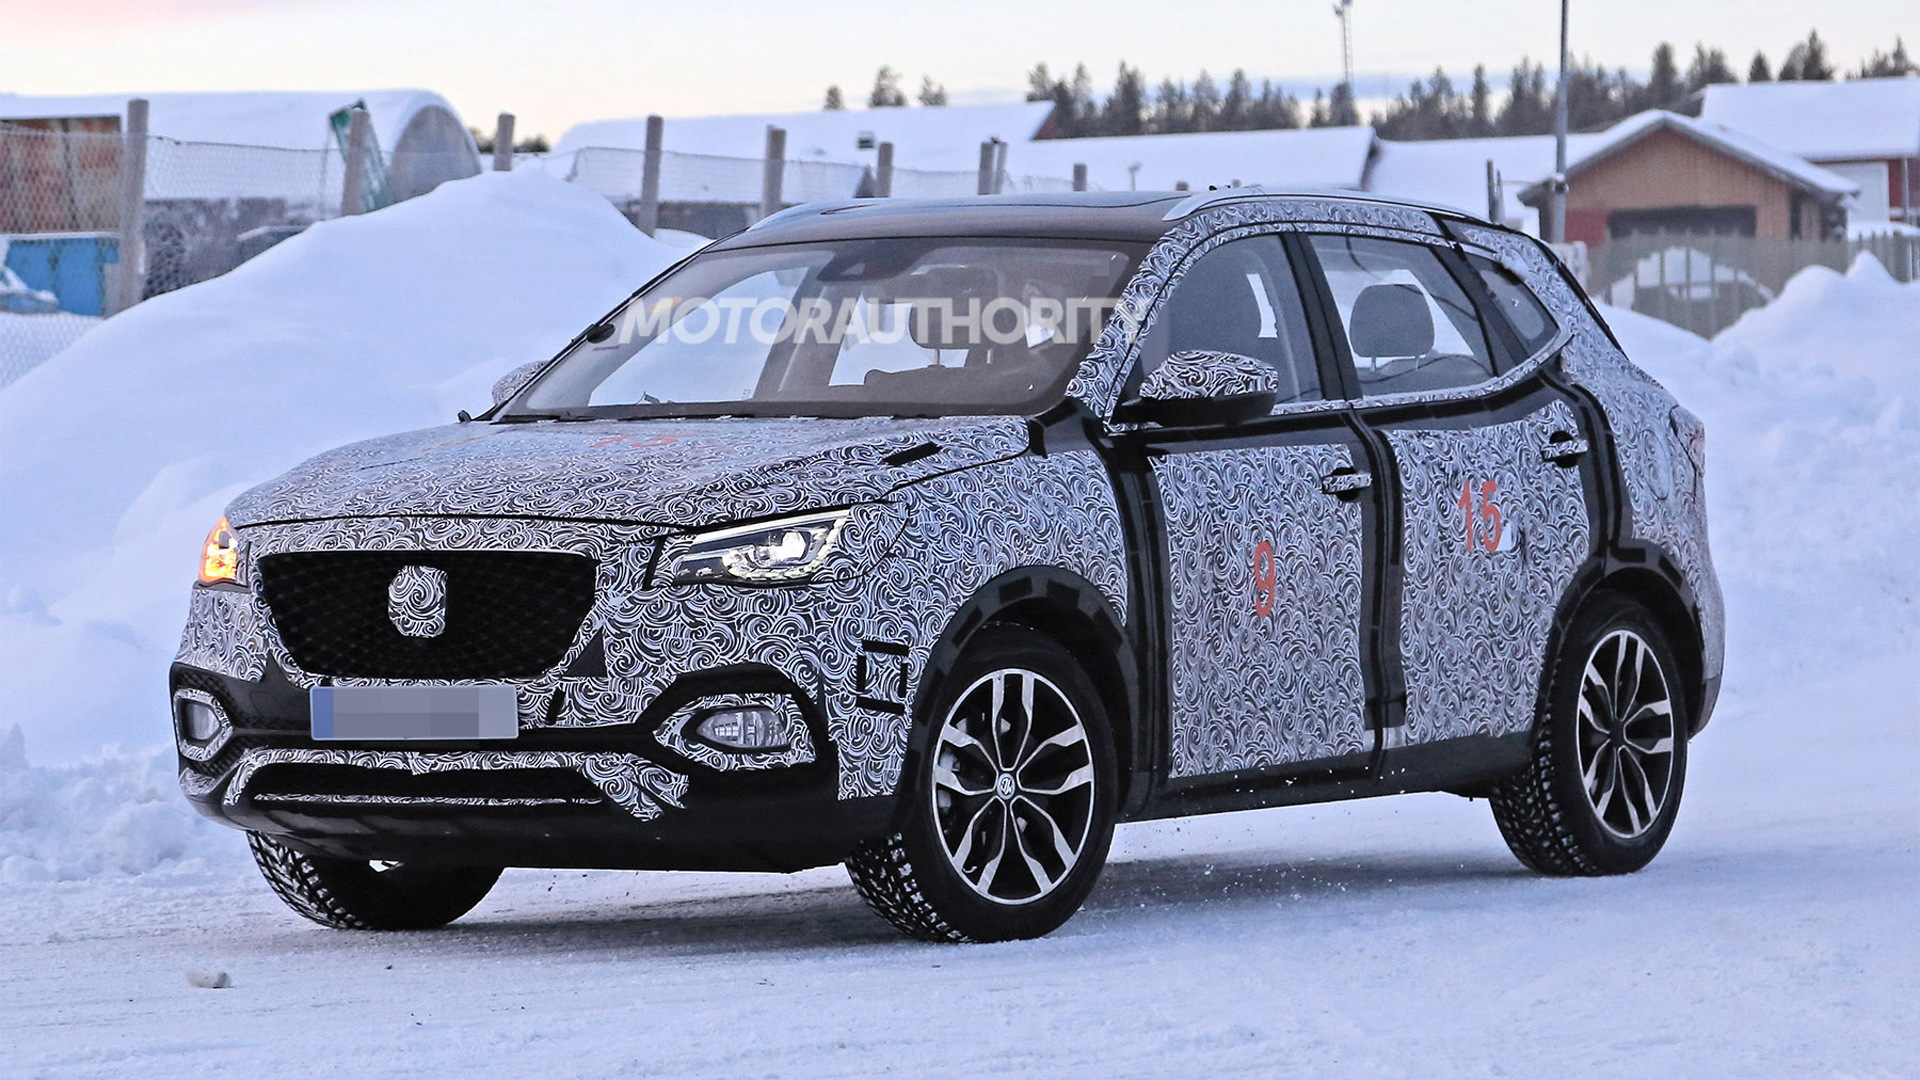 2020 MG X-Motion spy shots - Image via S. Baldauf/SB-Medien